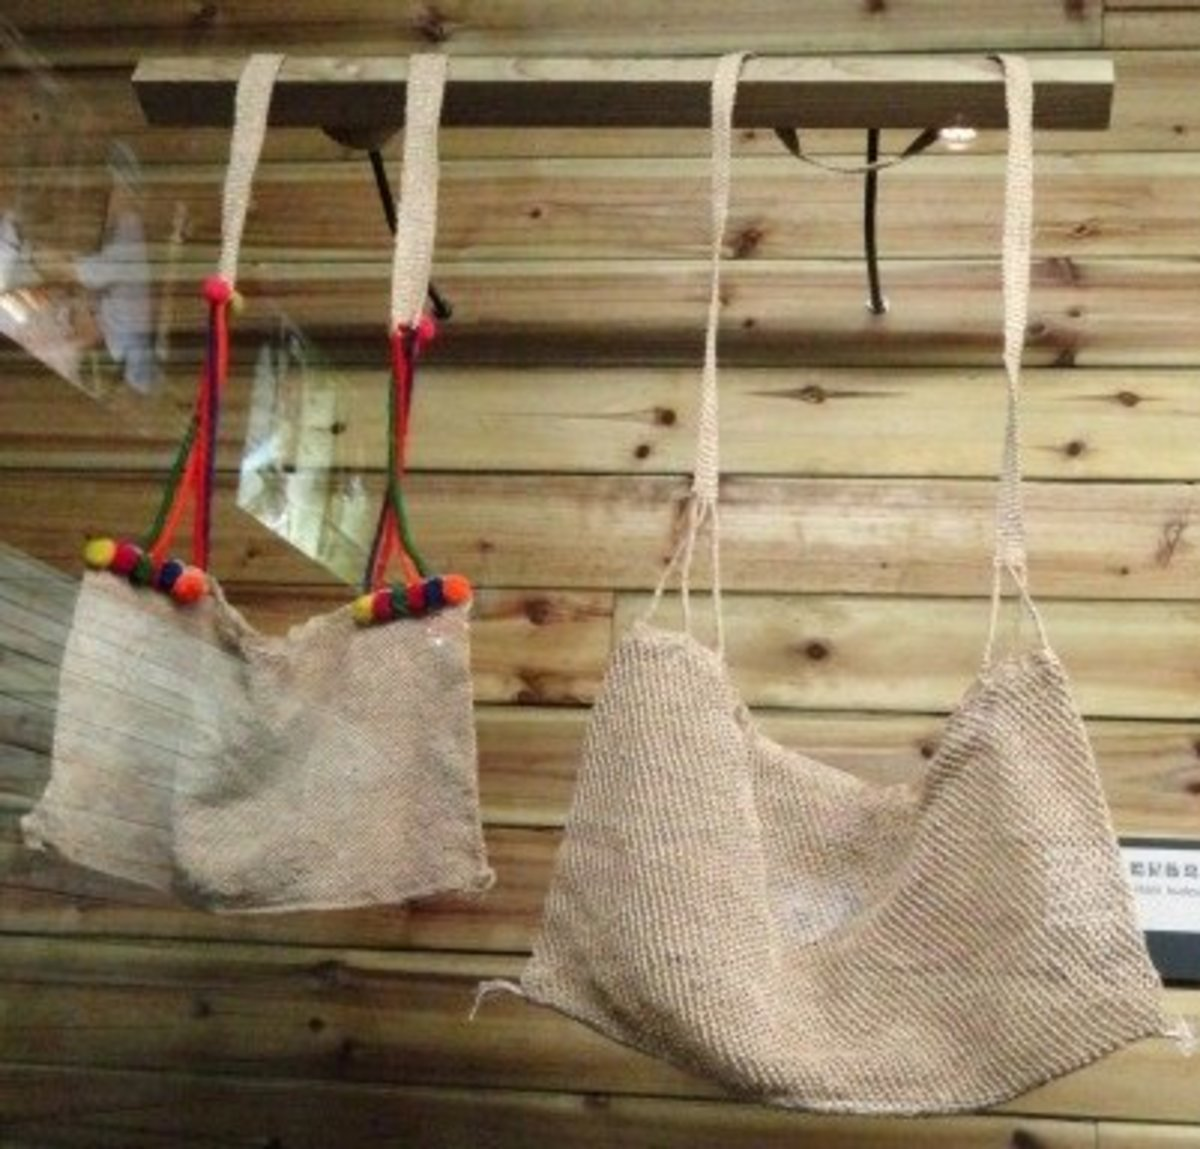 Tote bags made from woven kudzu fiber.